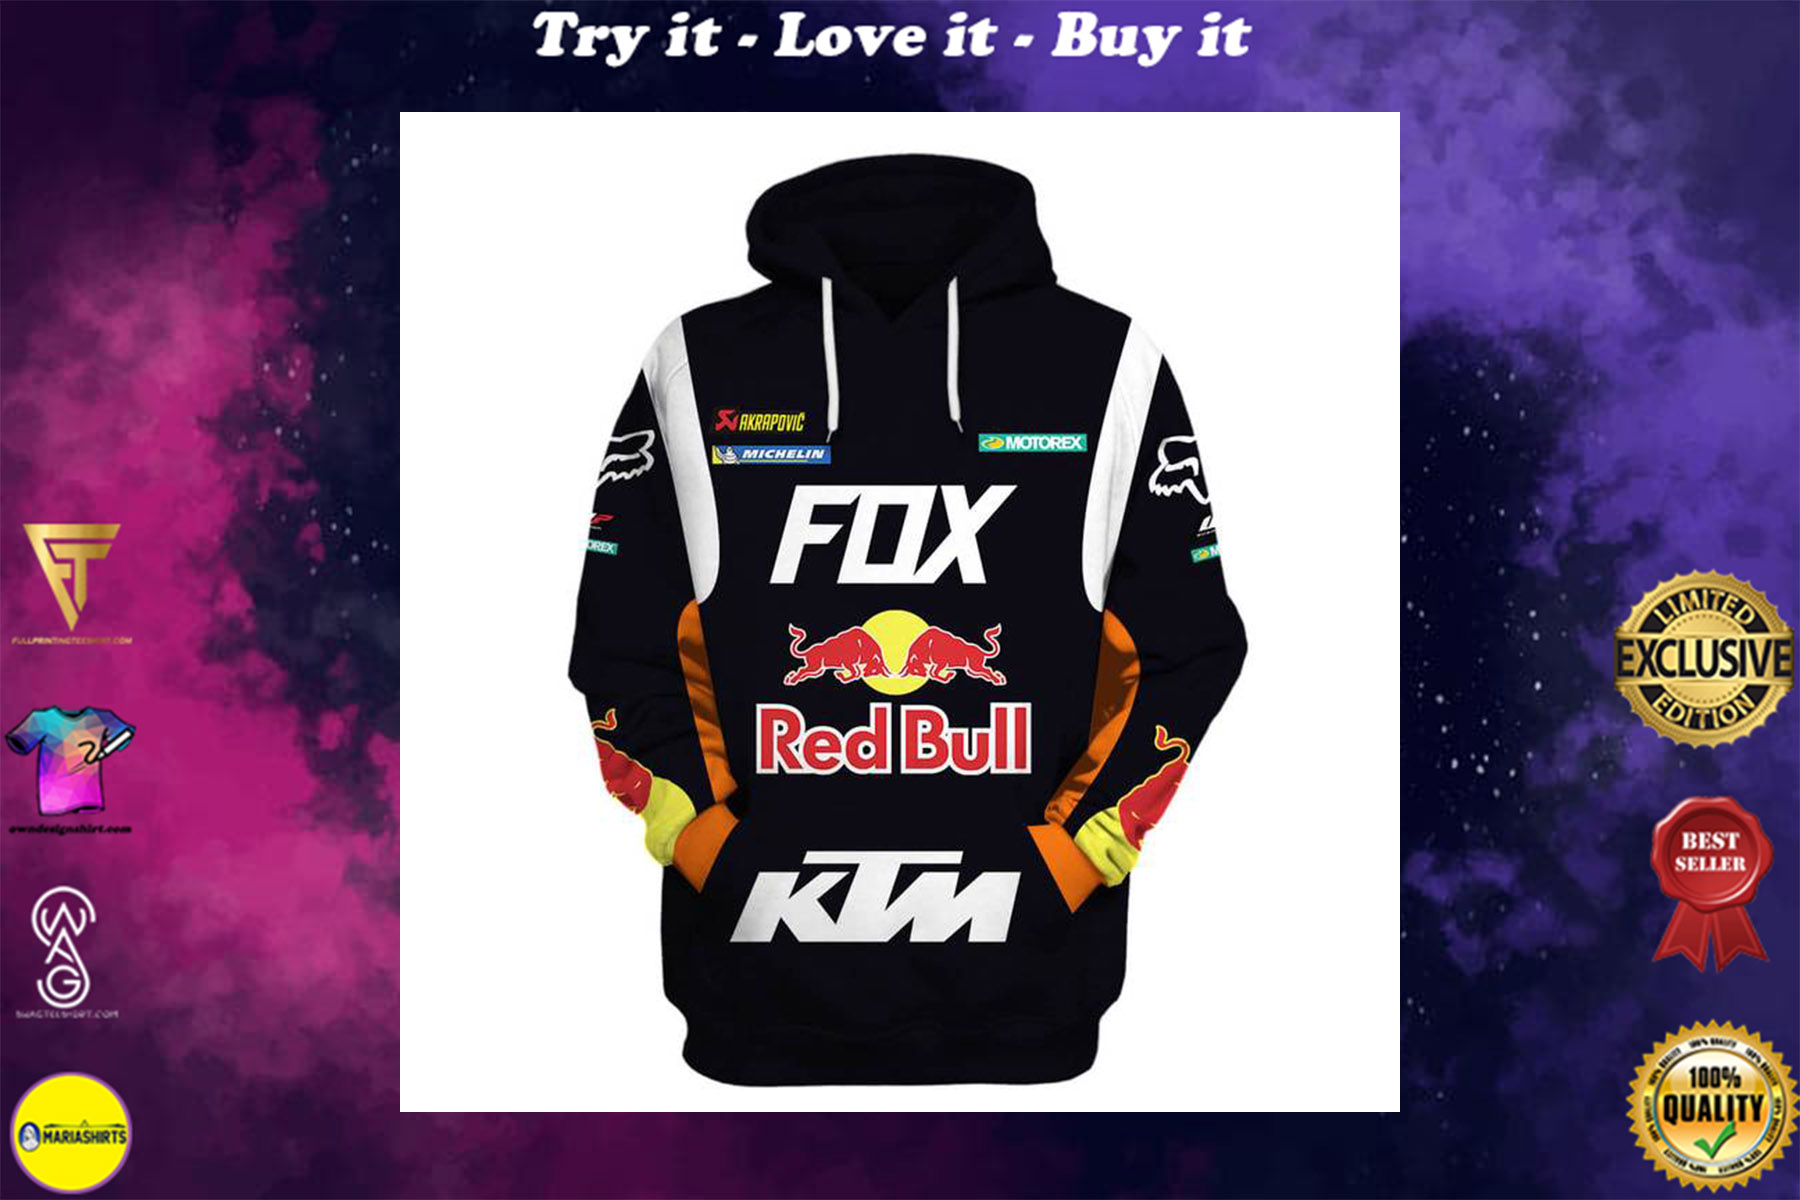 [special edition] ktm motorex red bull motorcycle racing team full printing shirt - maria